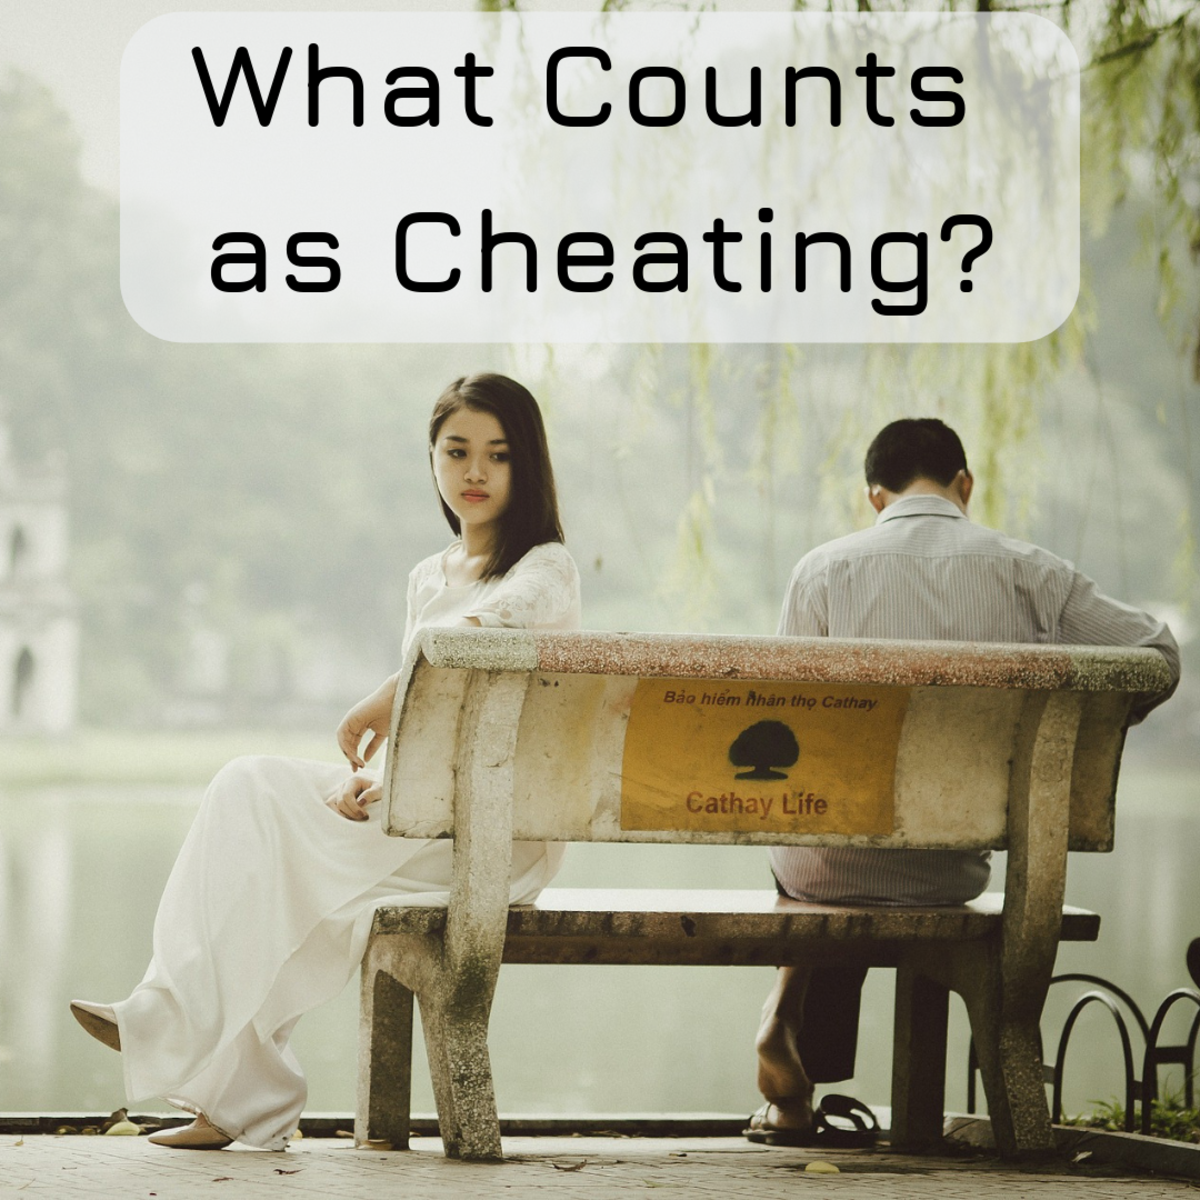 What classifies as cheating